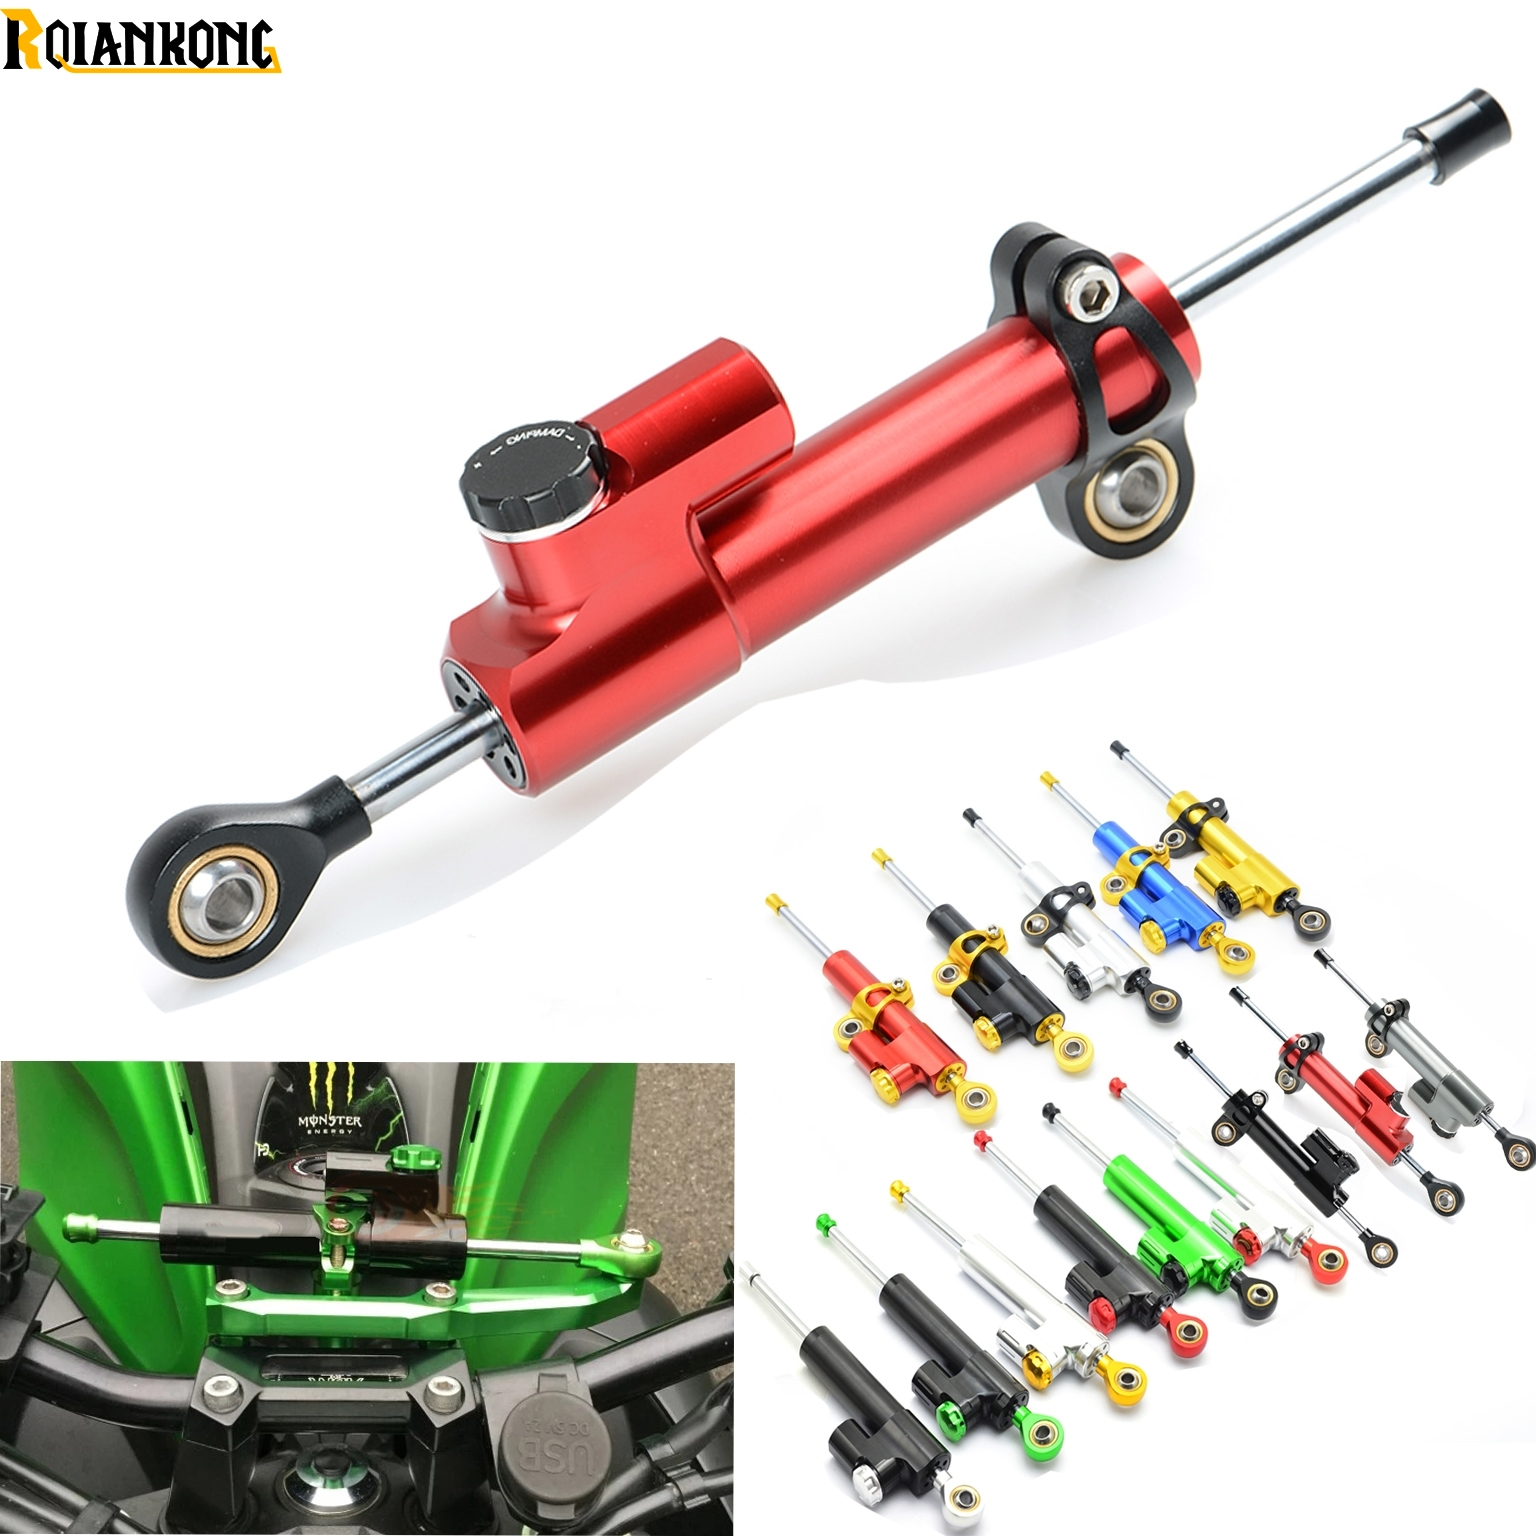 CNC Aluminum Motorcycle Steering Damper Stabilizer Linear Safe Control for Ducati Hypermotard 1100 796 821 939 EVO S SP STRADA for ducati monster 821 hypermotard 821 strada 14 15 motorcycle cnc billet aluminum folding extendable brake clutch levers